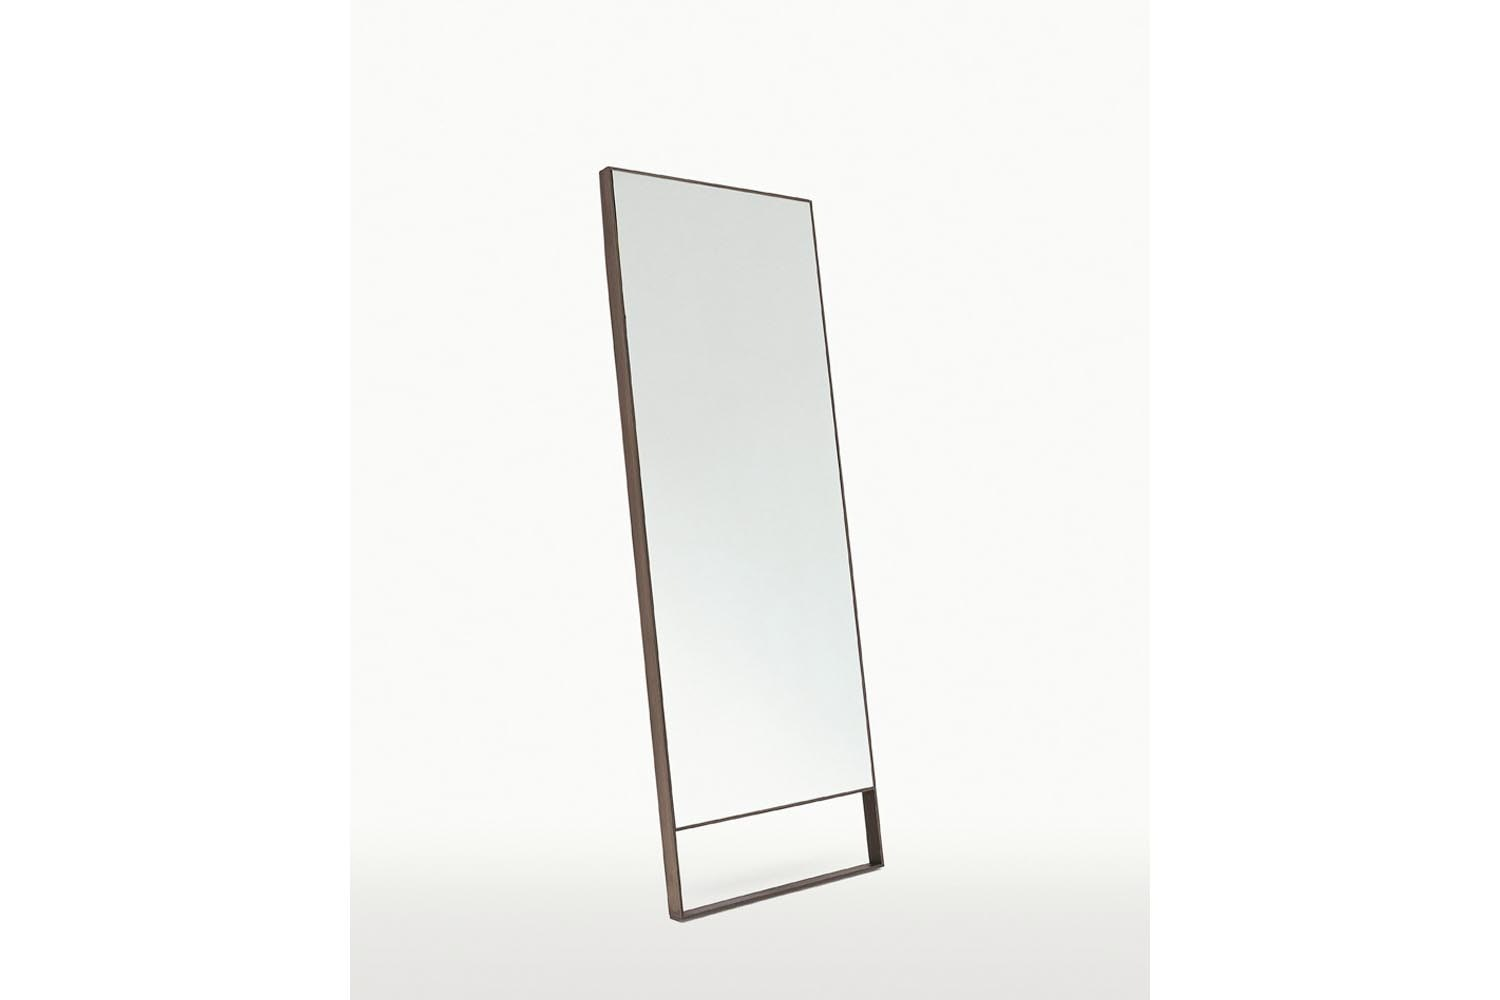 Psiche Tall Mirror by Antonio Citterio for Maxalto